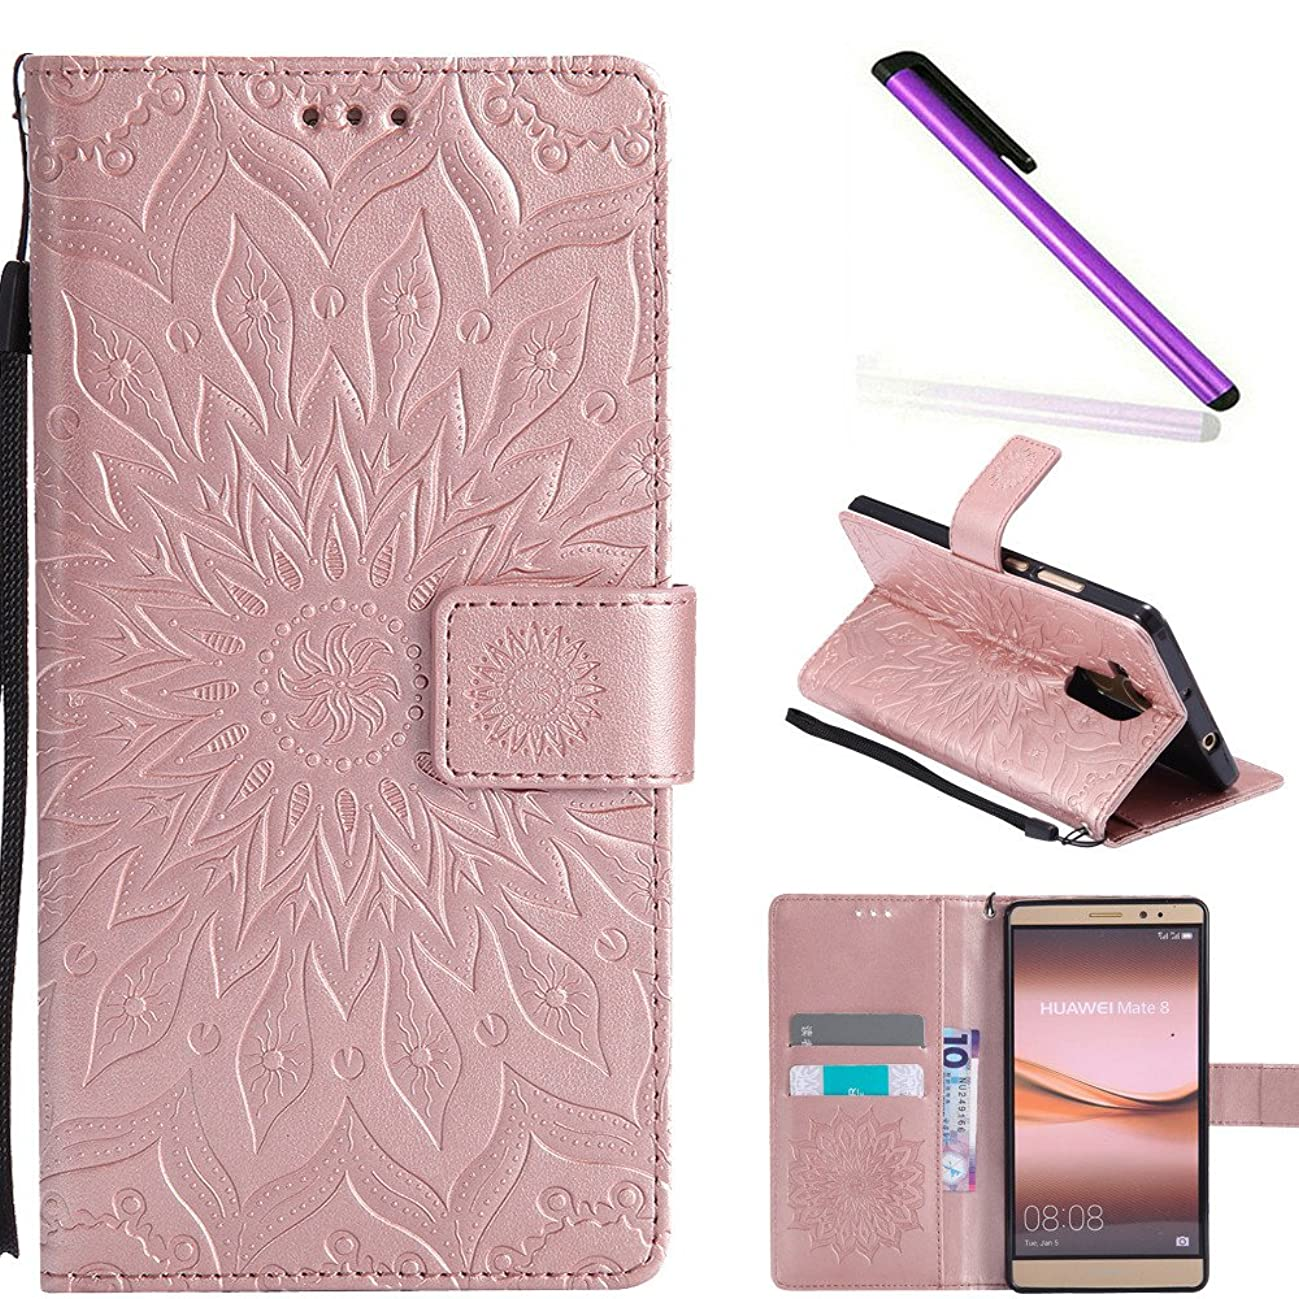 HMTECH Huawei Mate 8 case Sun Flower Embossed Floral Wallet Case with Card Cash Slots Kickstand Premium PU Leather Flip Stand Cover Stylus Pen for Huawei Mate 8 KT Mandala Rose Gold